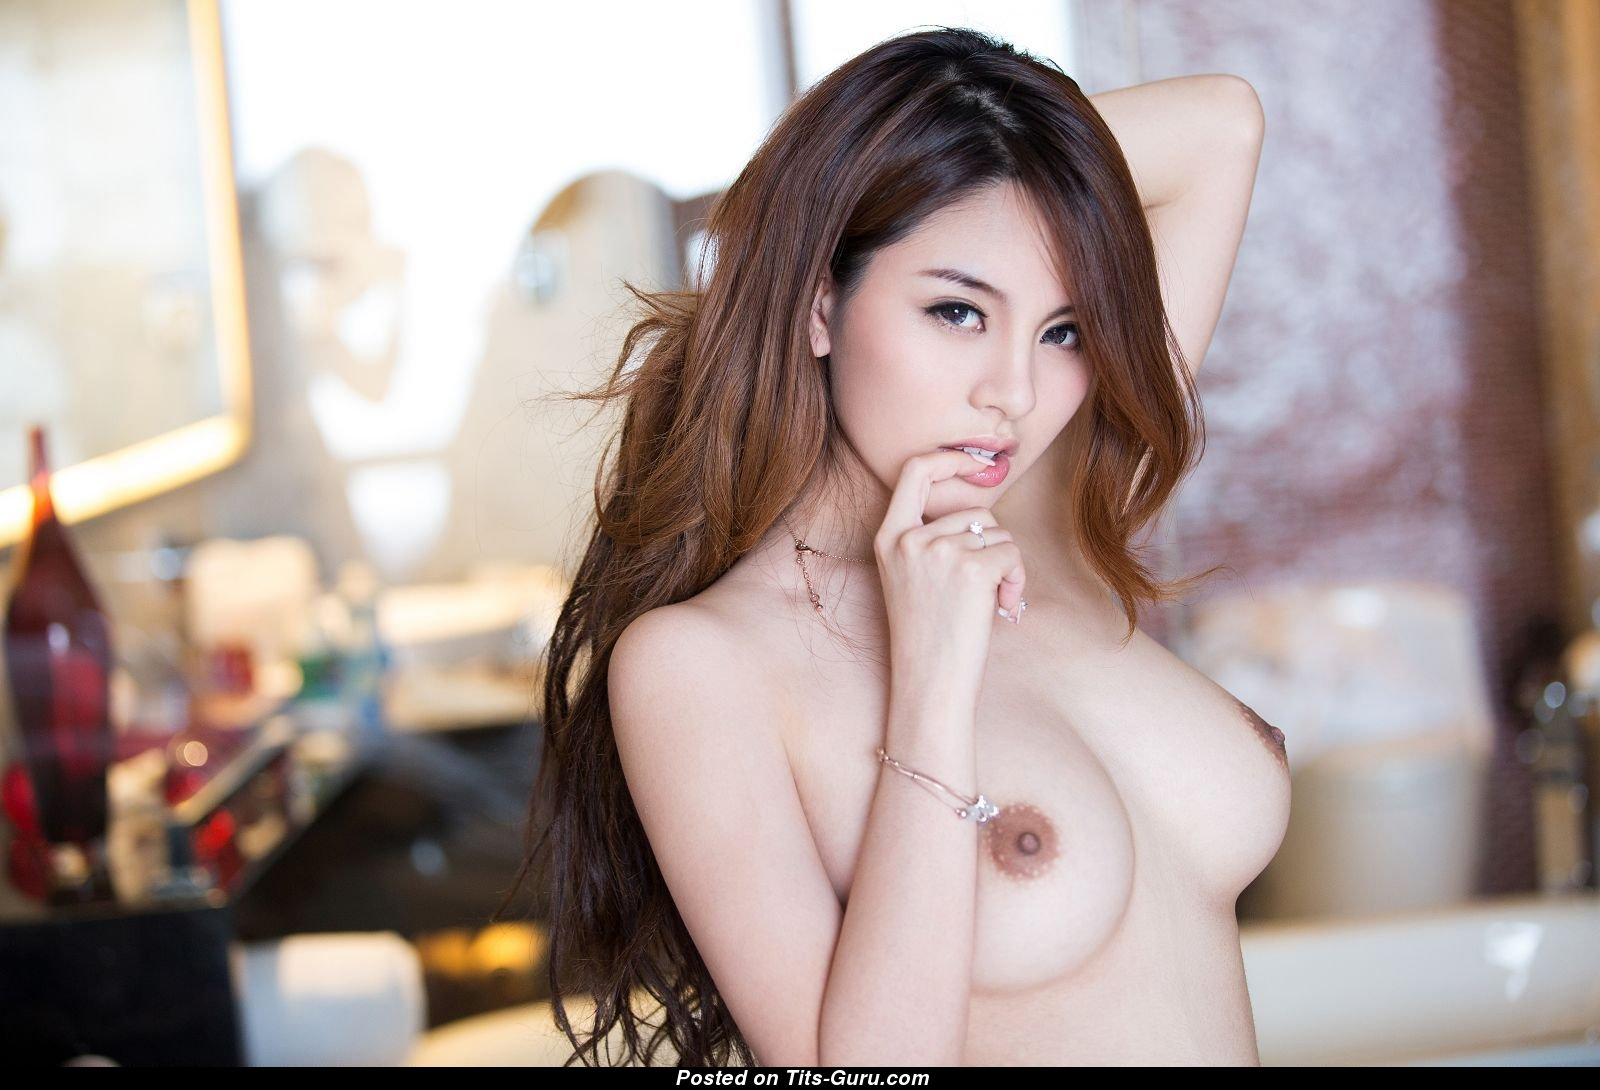 84274ef5 2466 455c a5ef 846ccc09d6ea - Zhao Wei Yi Nude Images